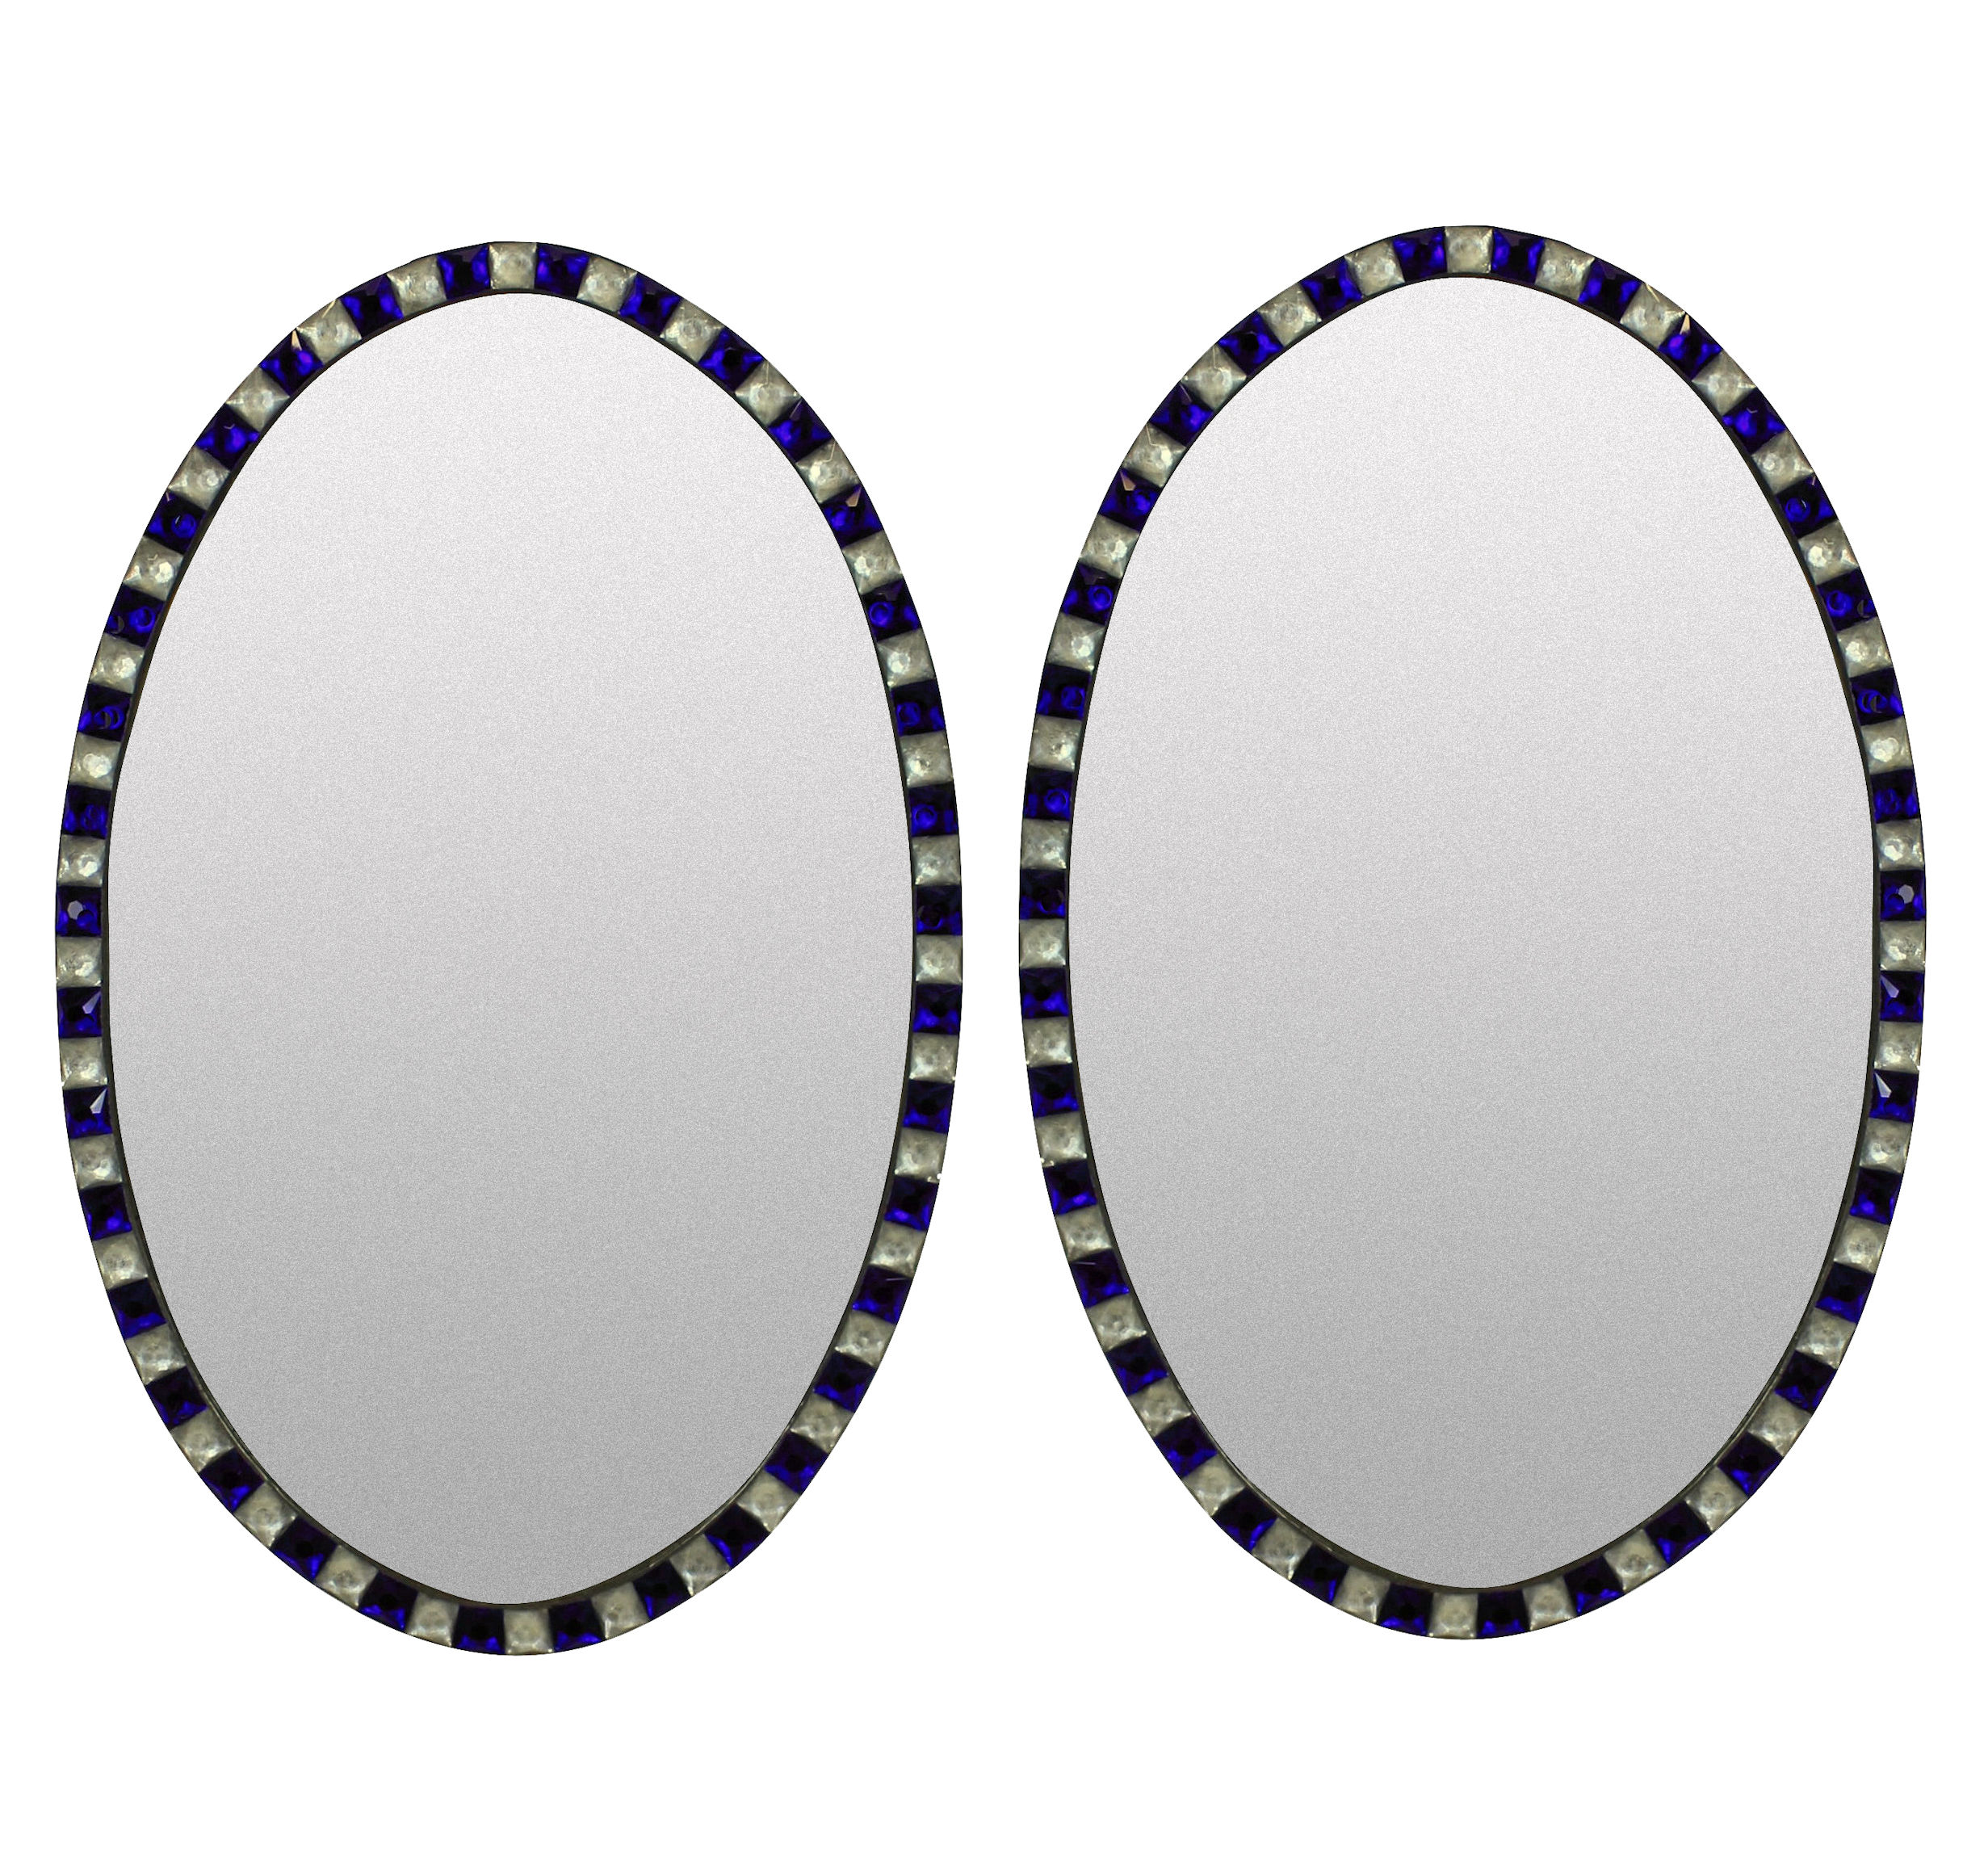 A PAIR OF GEORGIAN STYLE IRISH MIRRORS WITH COBALT GLASS & ROCK CRYSTAL FACETED BORDER